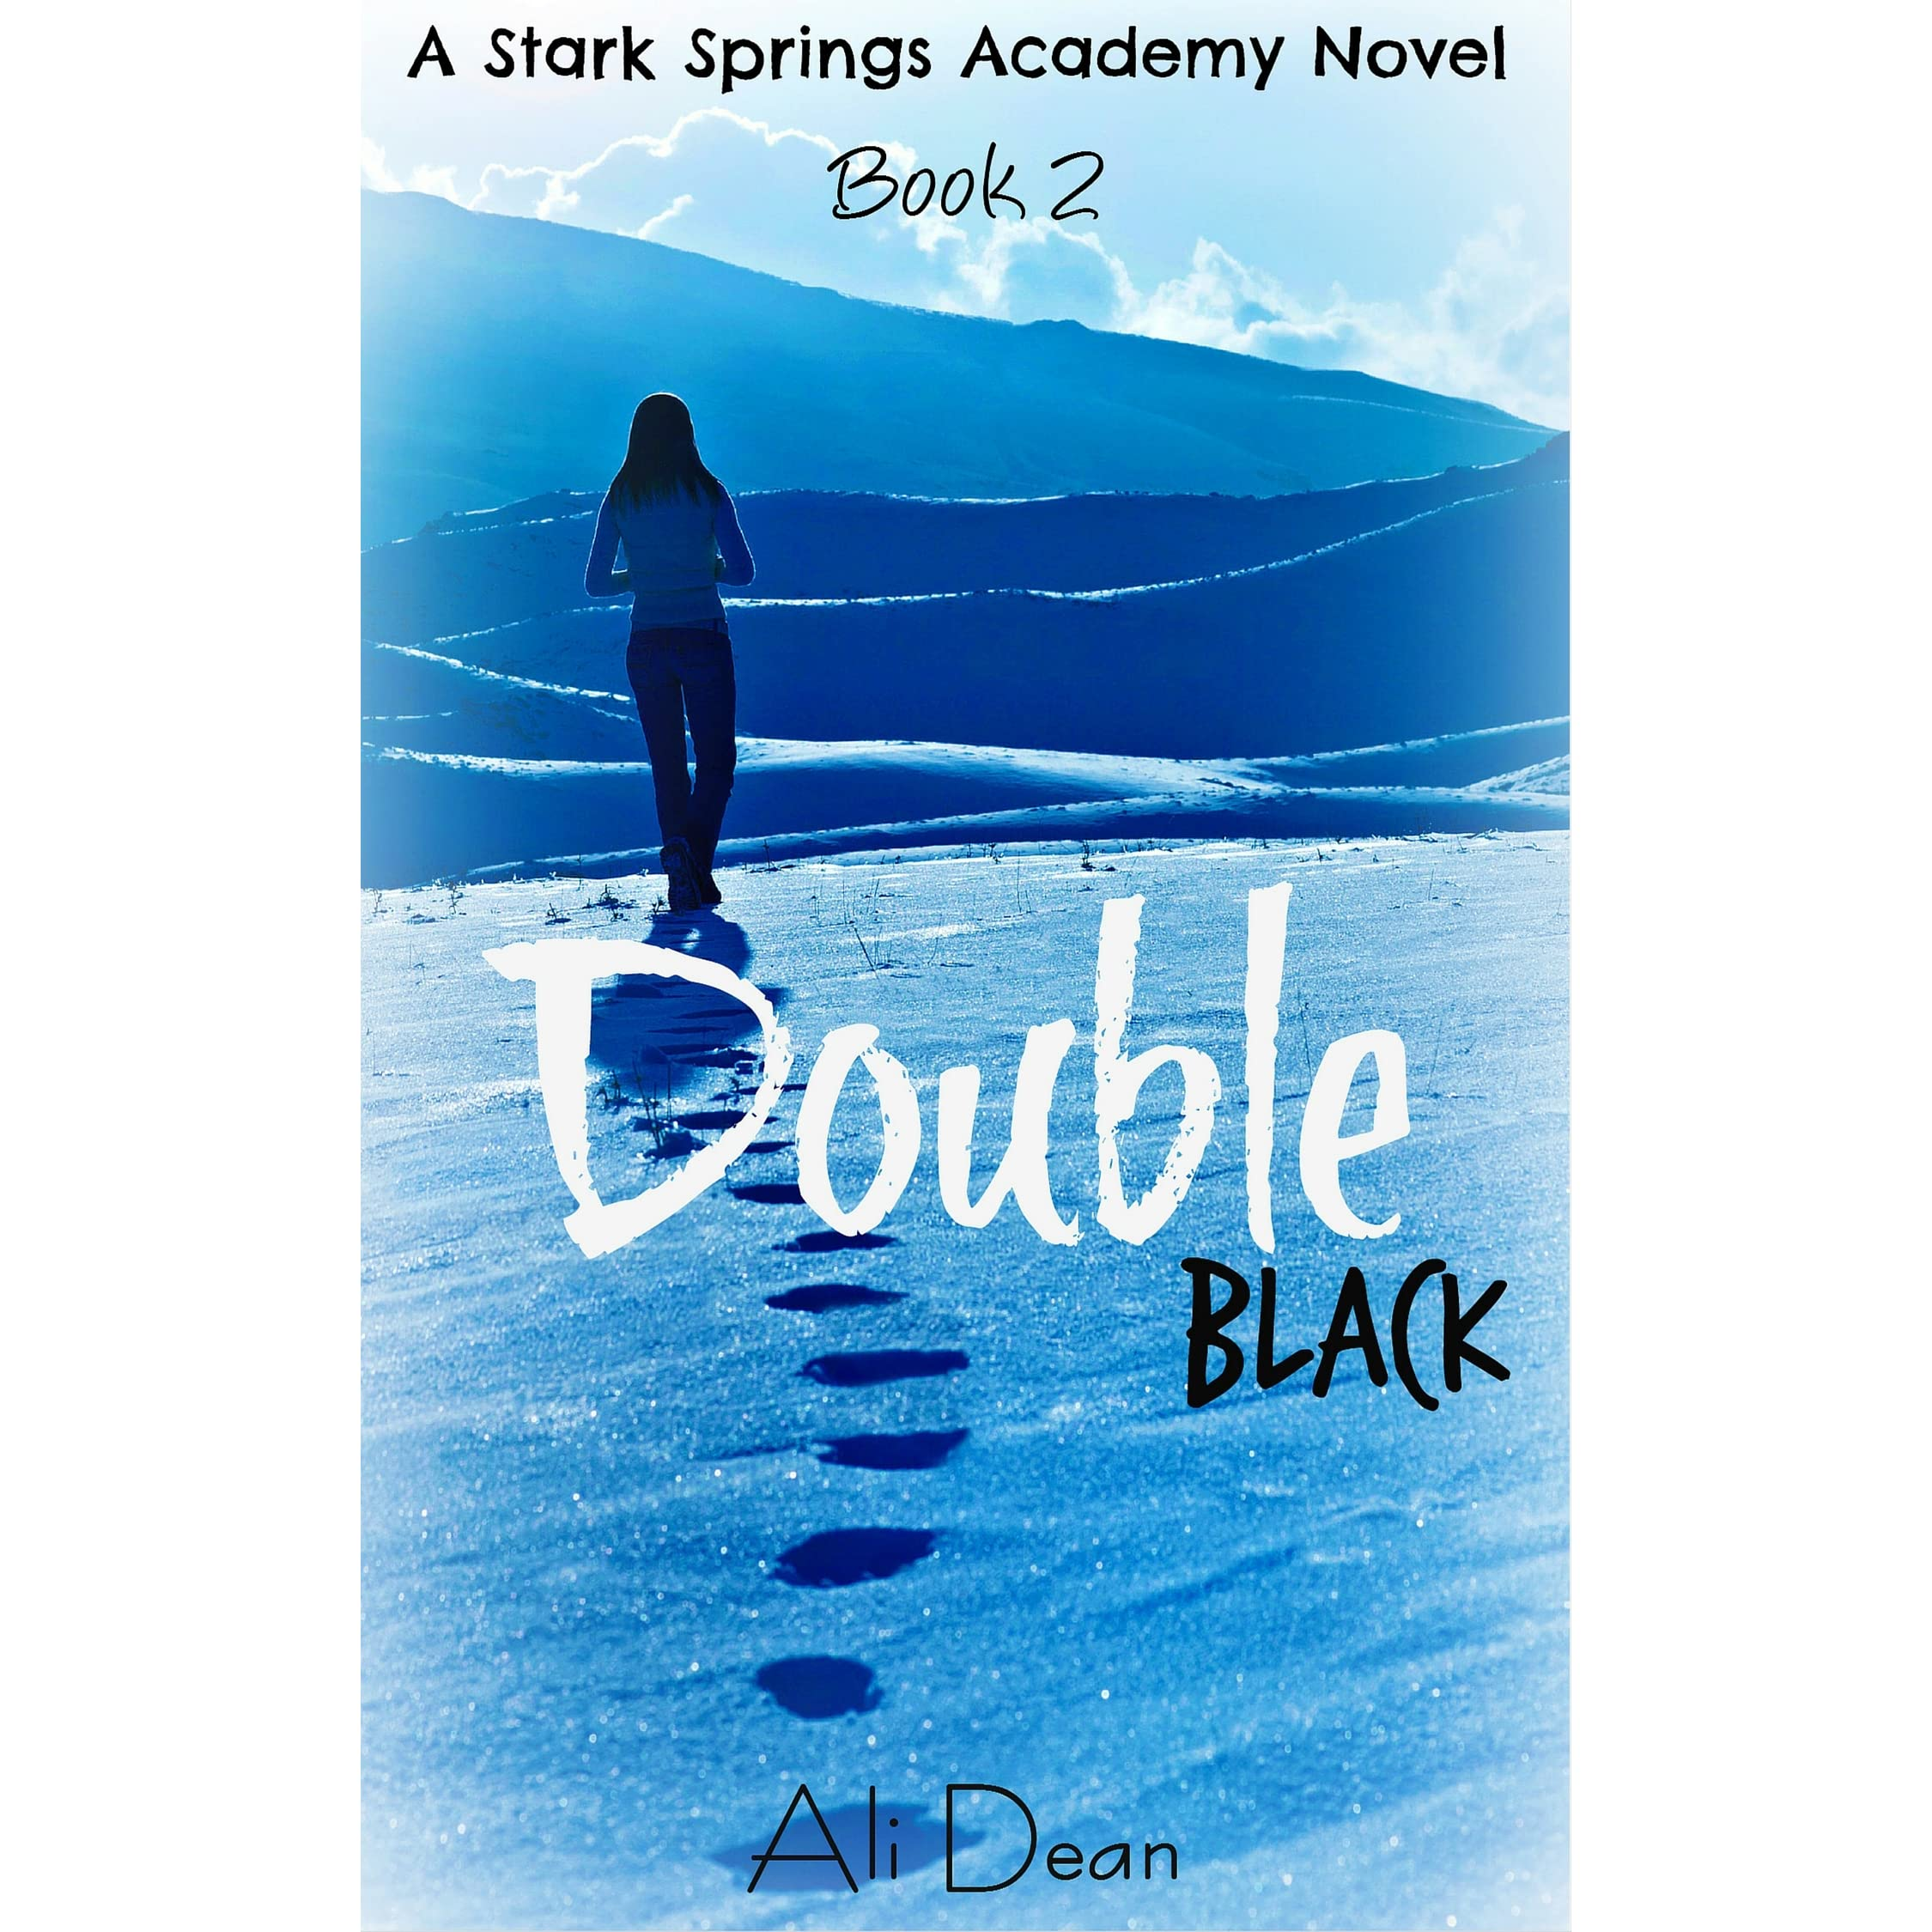 What does 'female double' mean in novel?